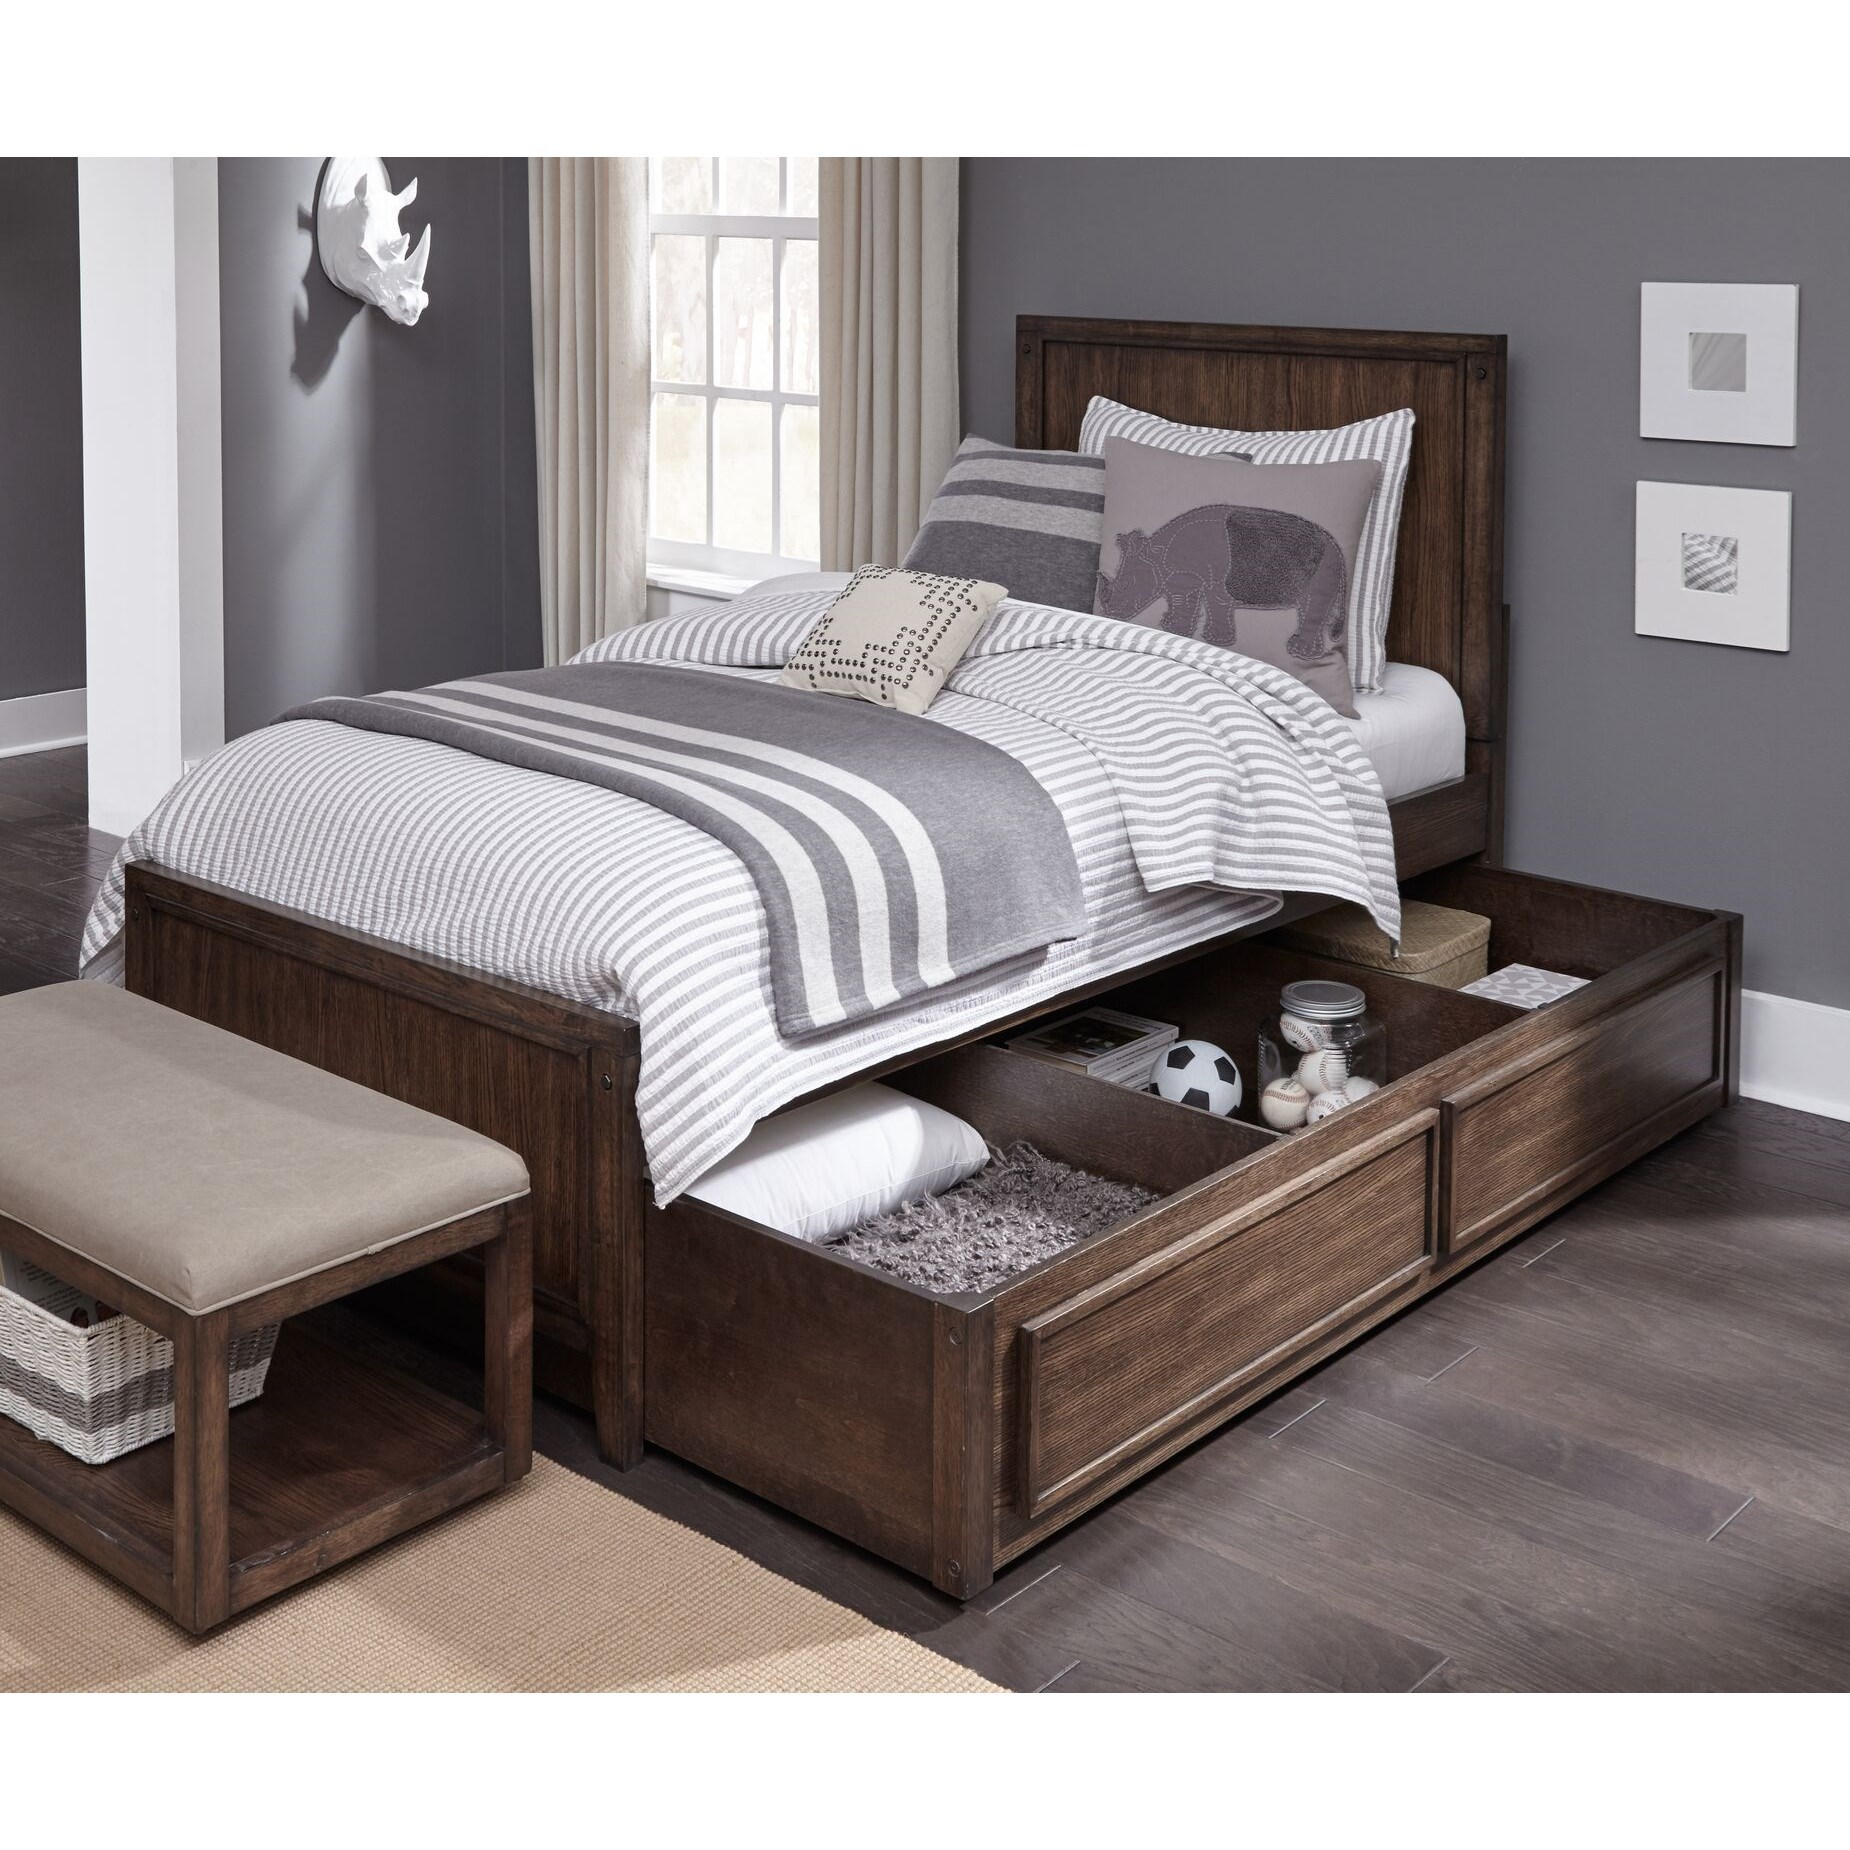 Charmant Legacy Classic Kids Sawyers MillTwin Panel Bed With Storage Trundle ...